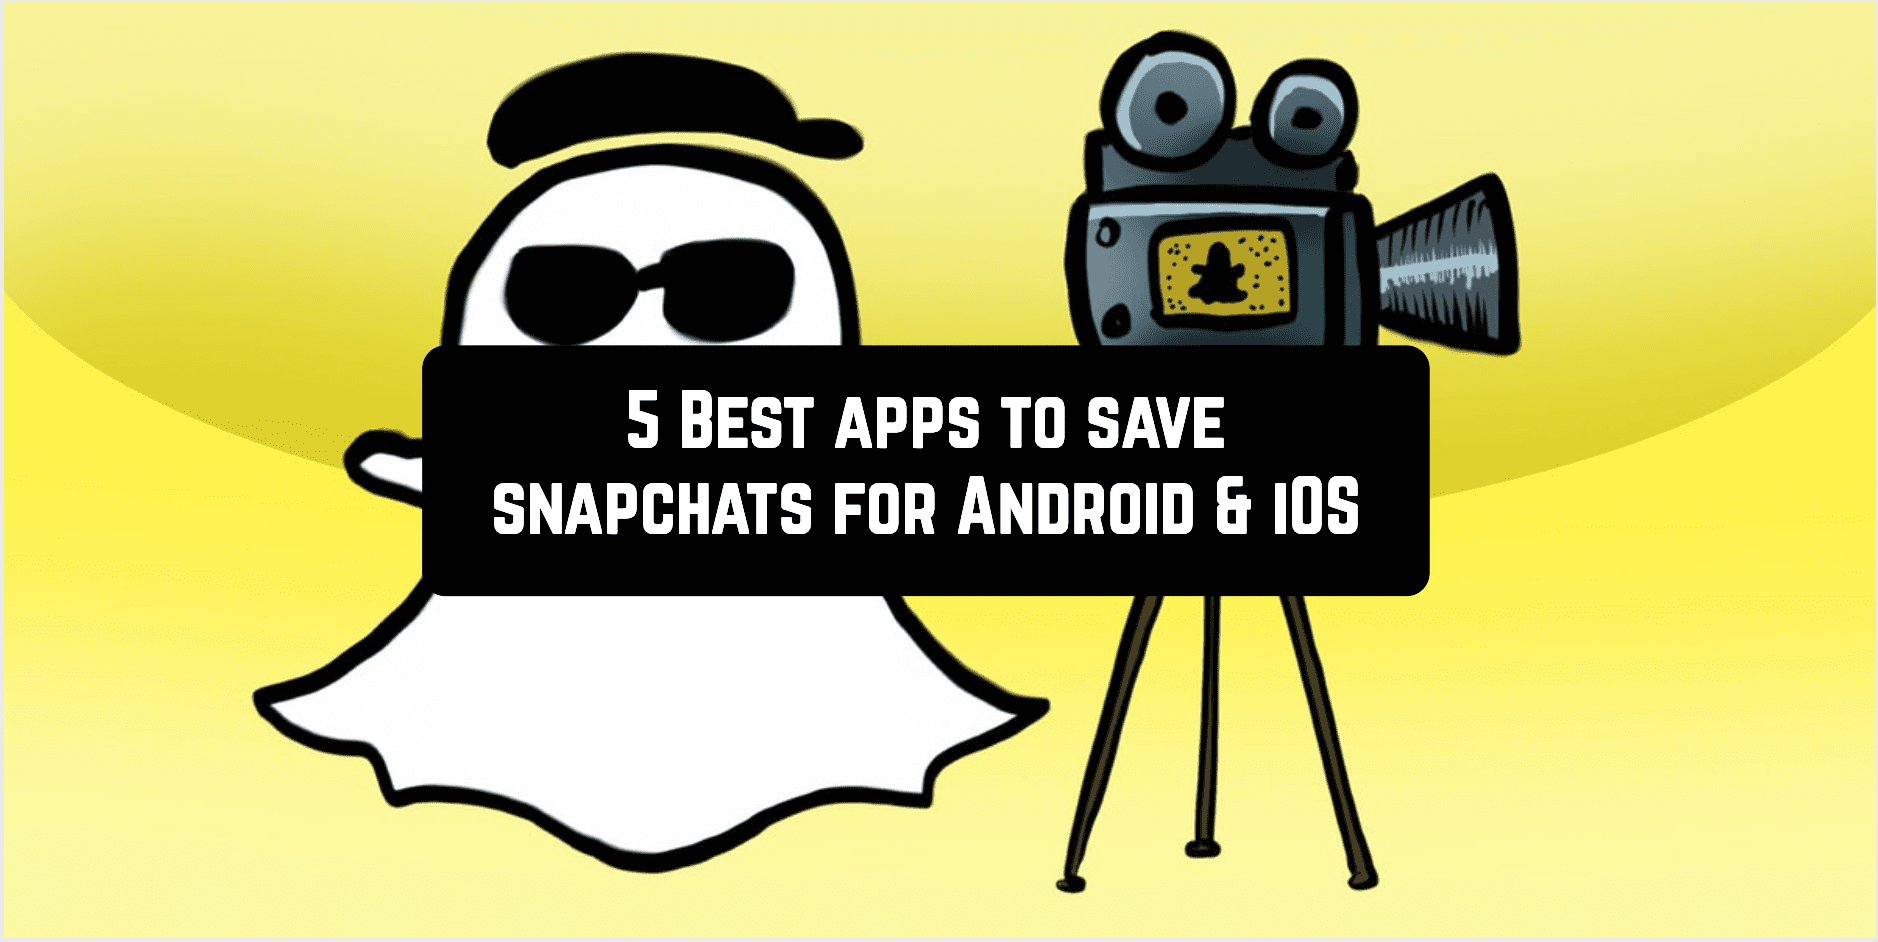 5 Best apps to save snapchats for Android & iOS   Free apps